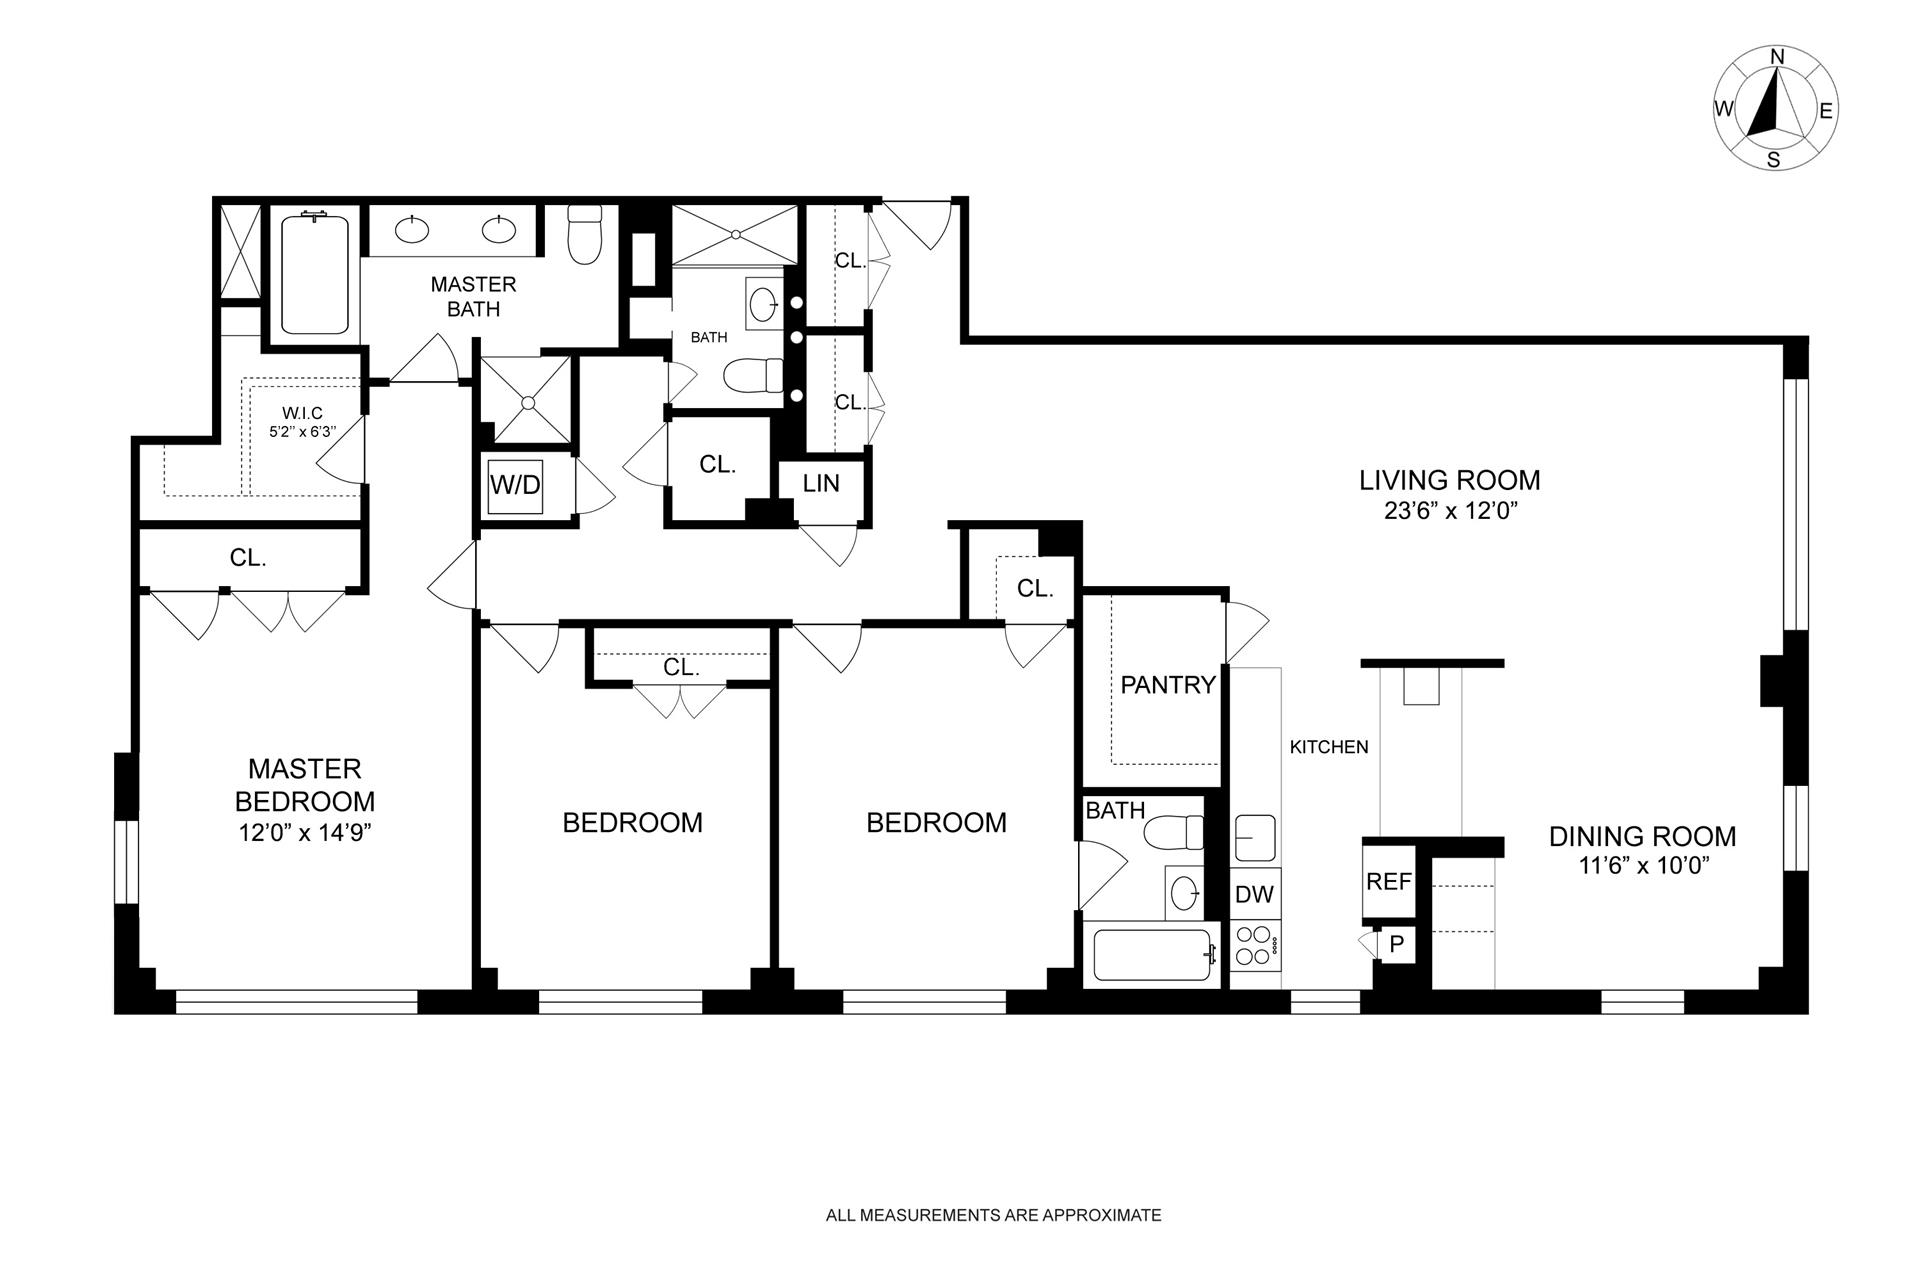 Floor plan of GREENWICH TOWERS, 105 West 13th St, 11CD - Greenwich Village, New York